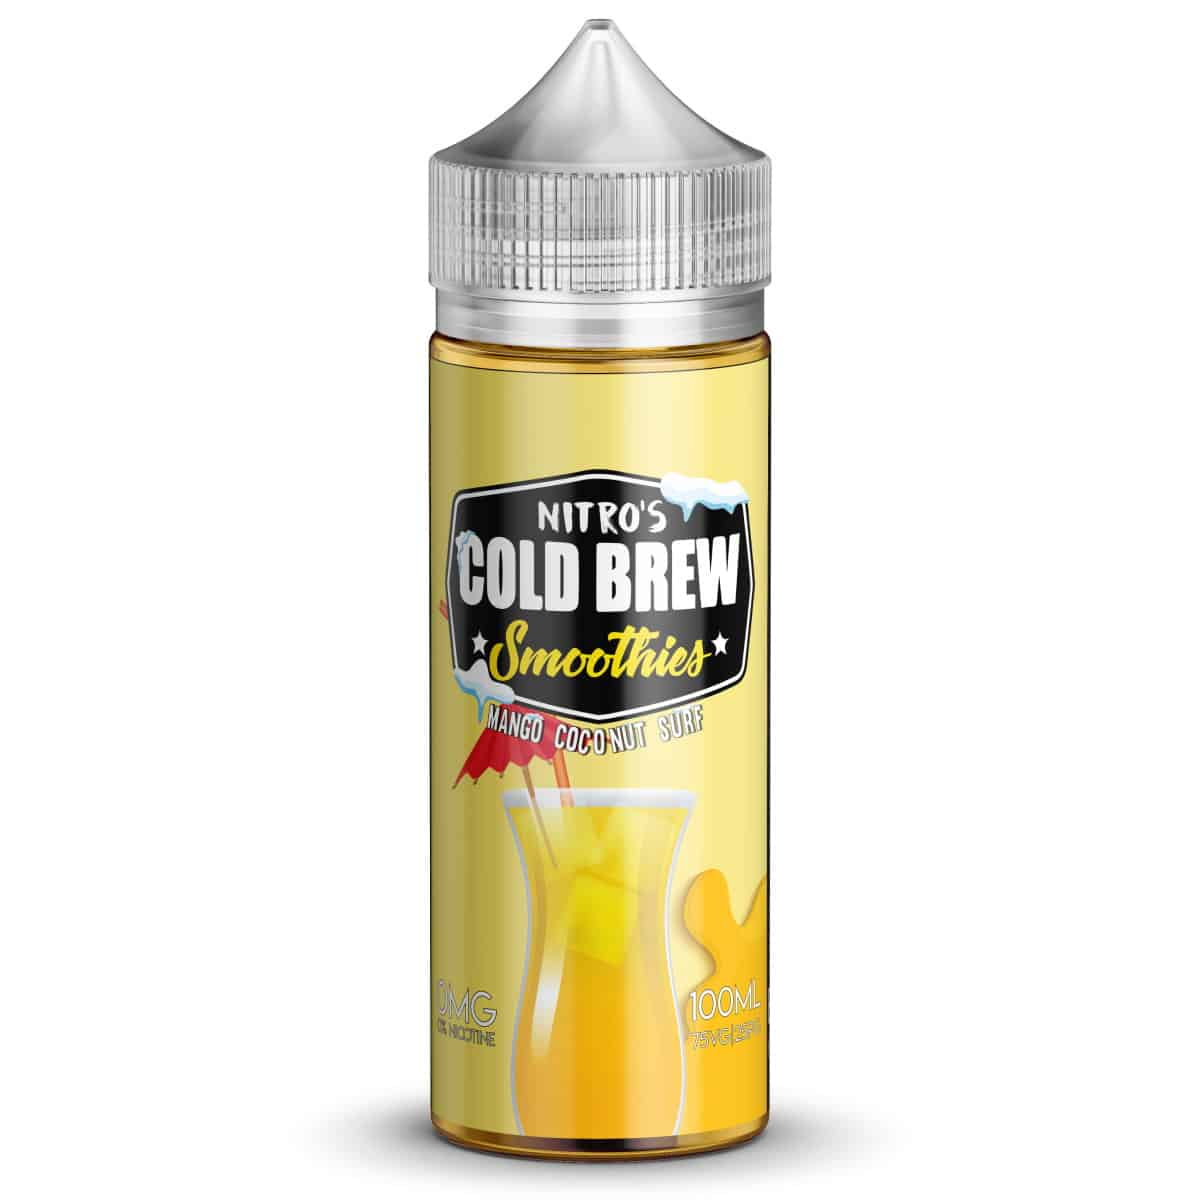 Mango Coconut Surf Nitros Cold Brew Smoothies Shortfill 100ml